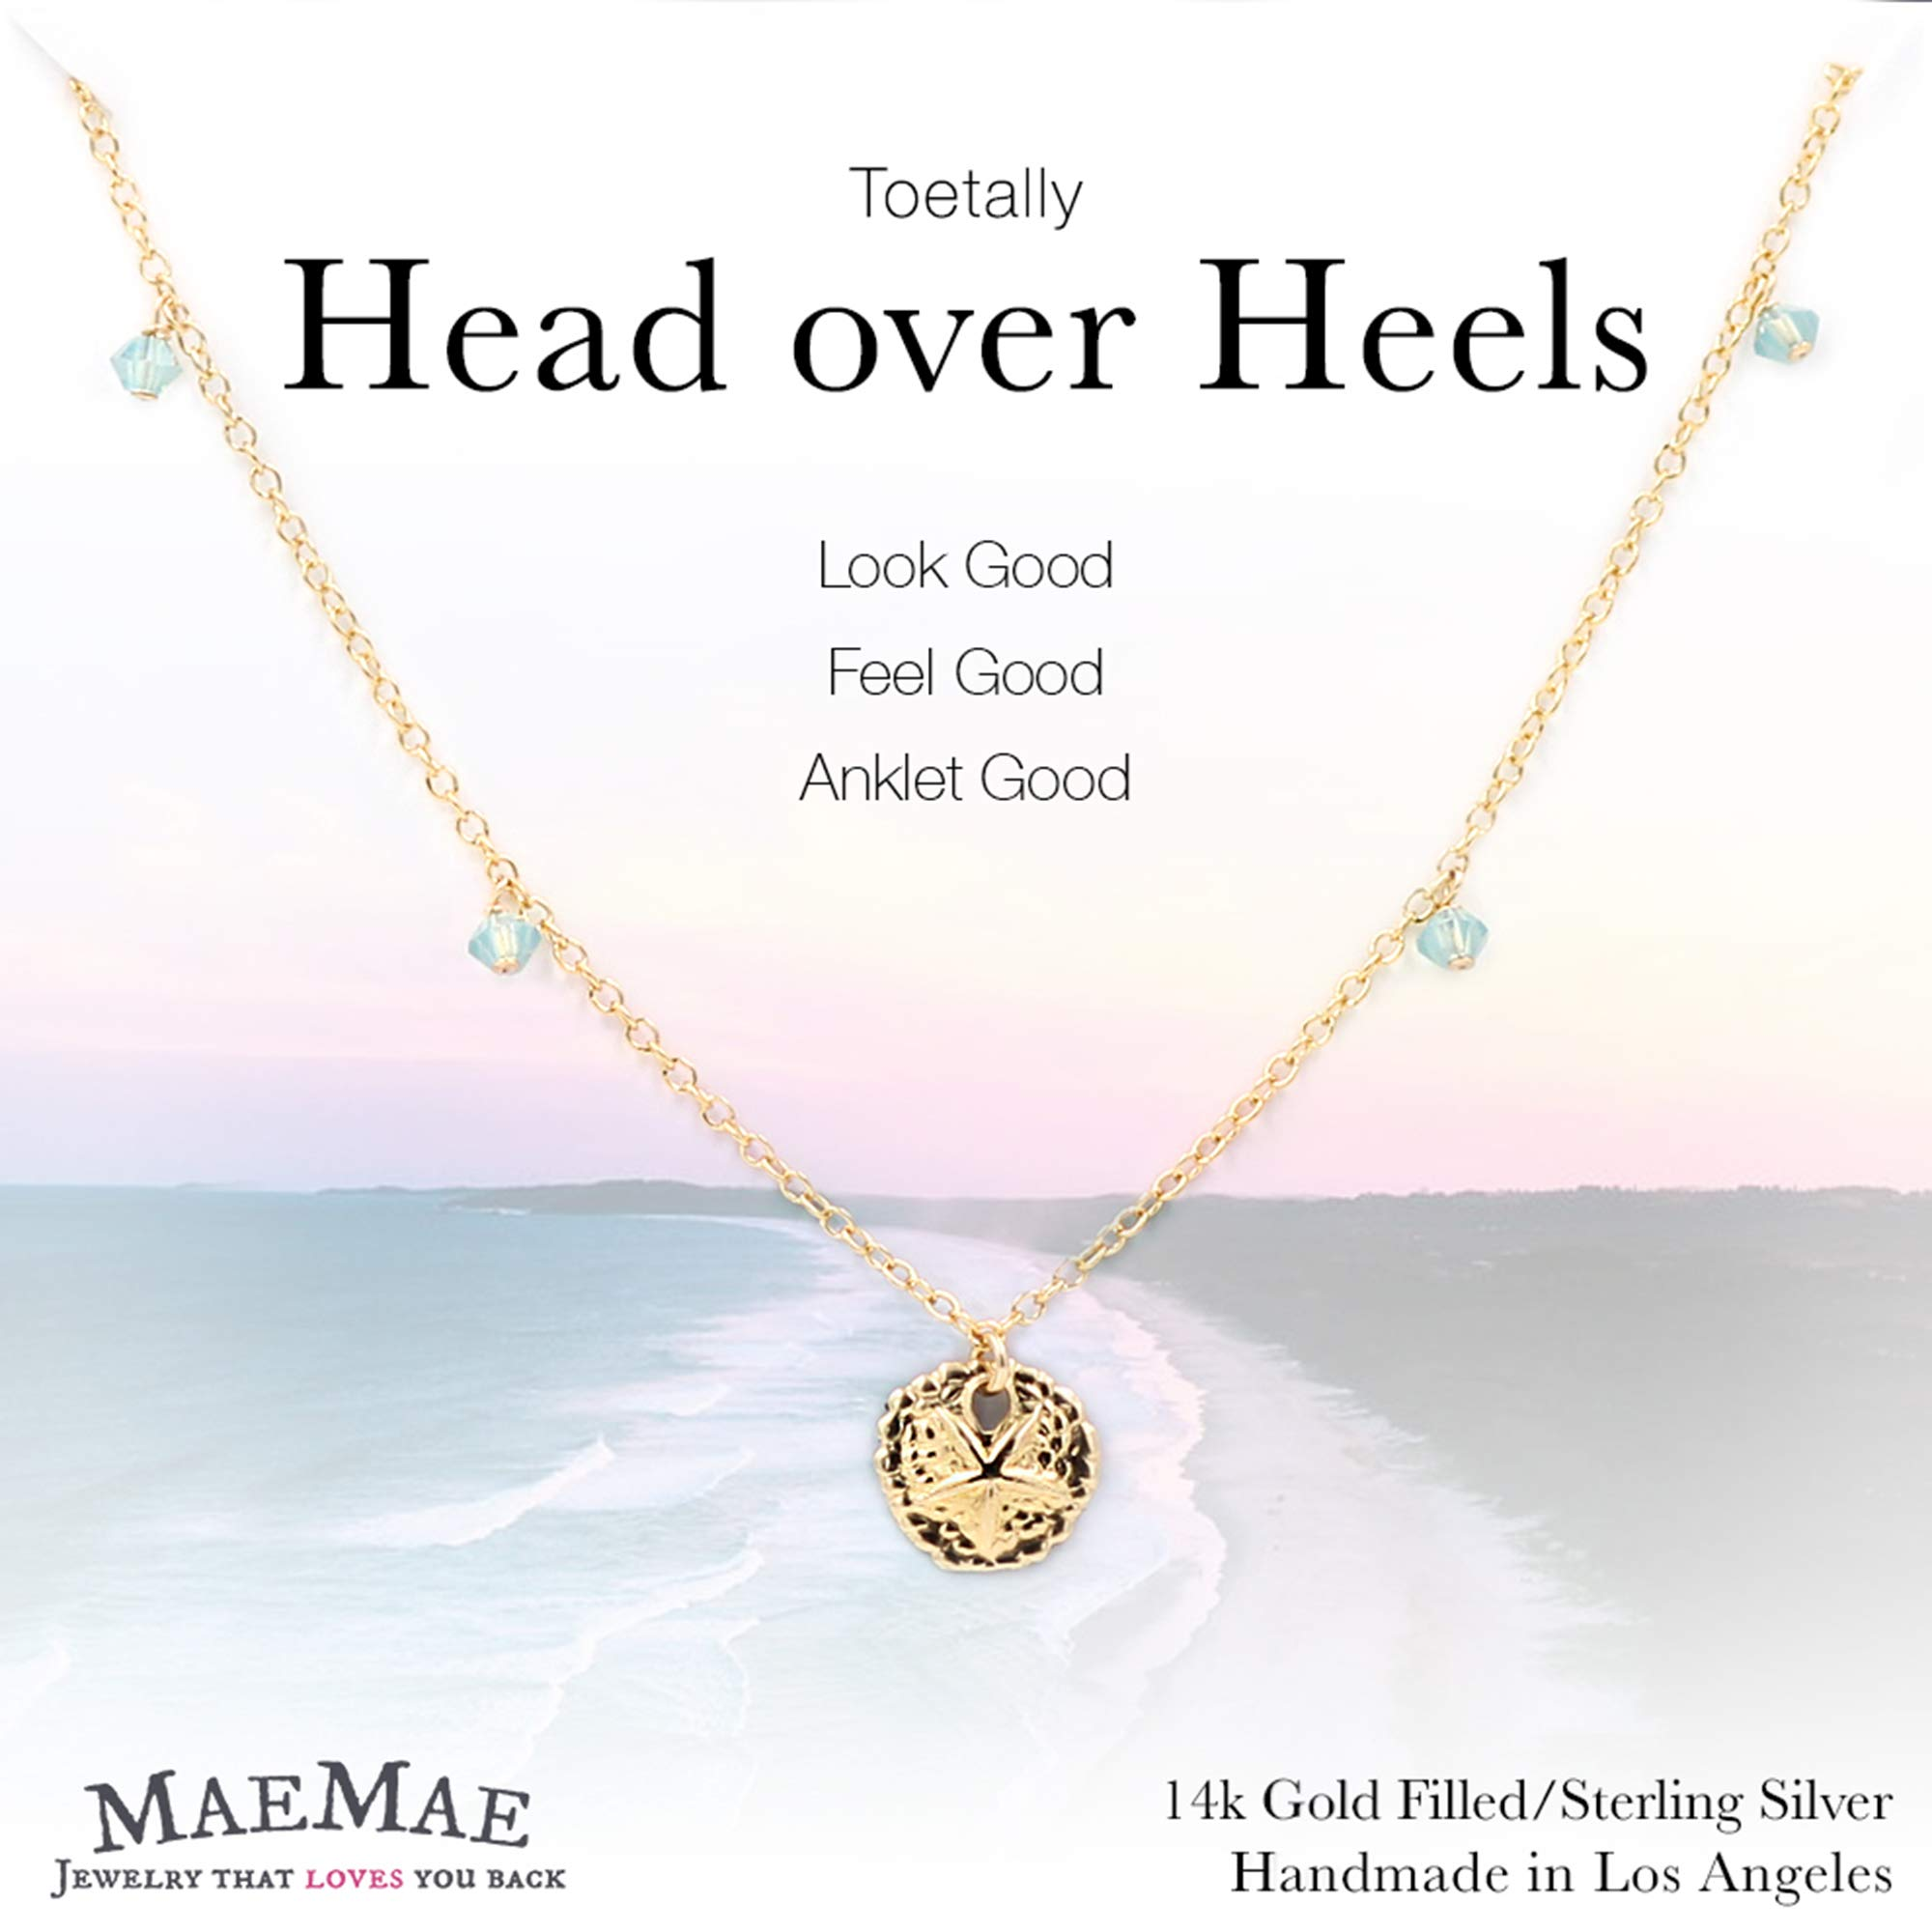 MaeMae 14k Gold Filled Sand Dollar Charm Anklet, 3mm Swarovski Crystals, Cable Chain, 8.5''+1'' Extender by MaeMae Jewelry (Image #2)